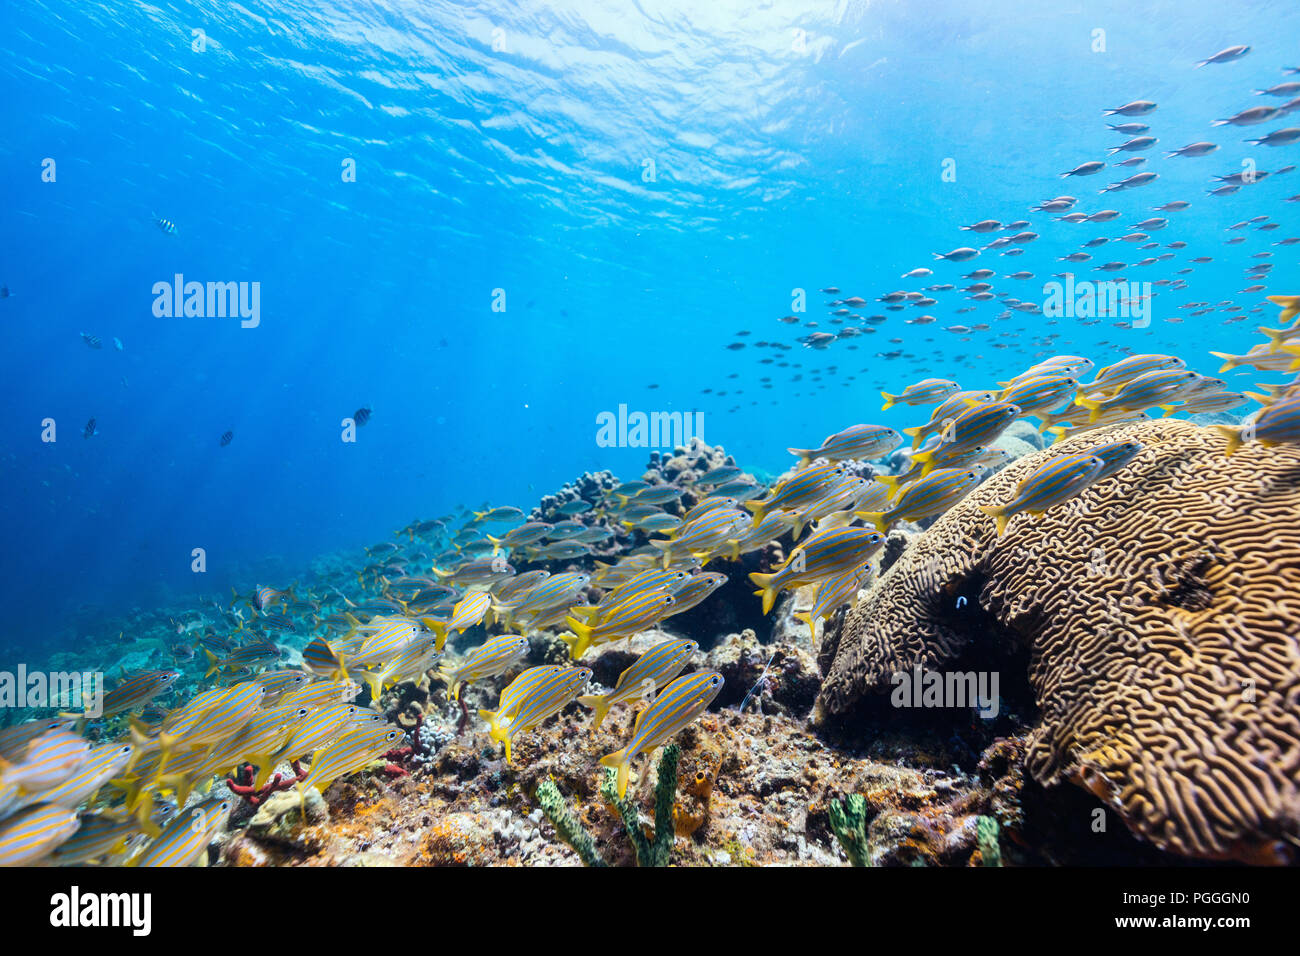 Beautiful colorful coral reef and tropical fish underwater in St Lucia Caribbean - Stock Image